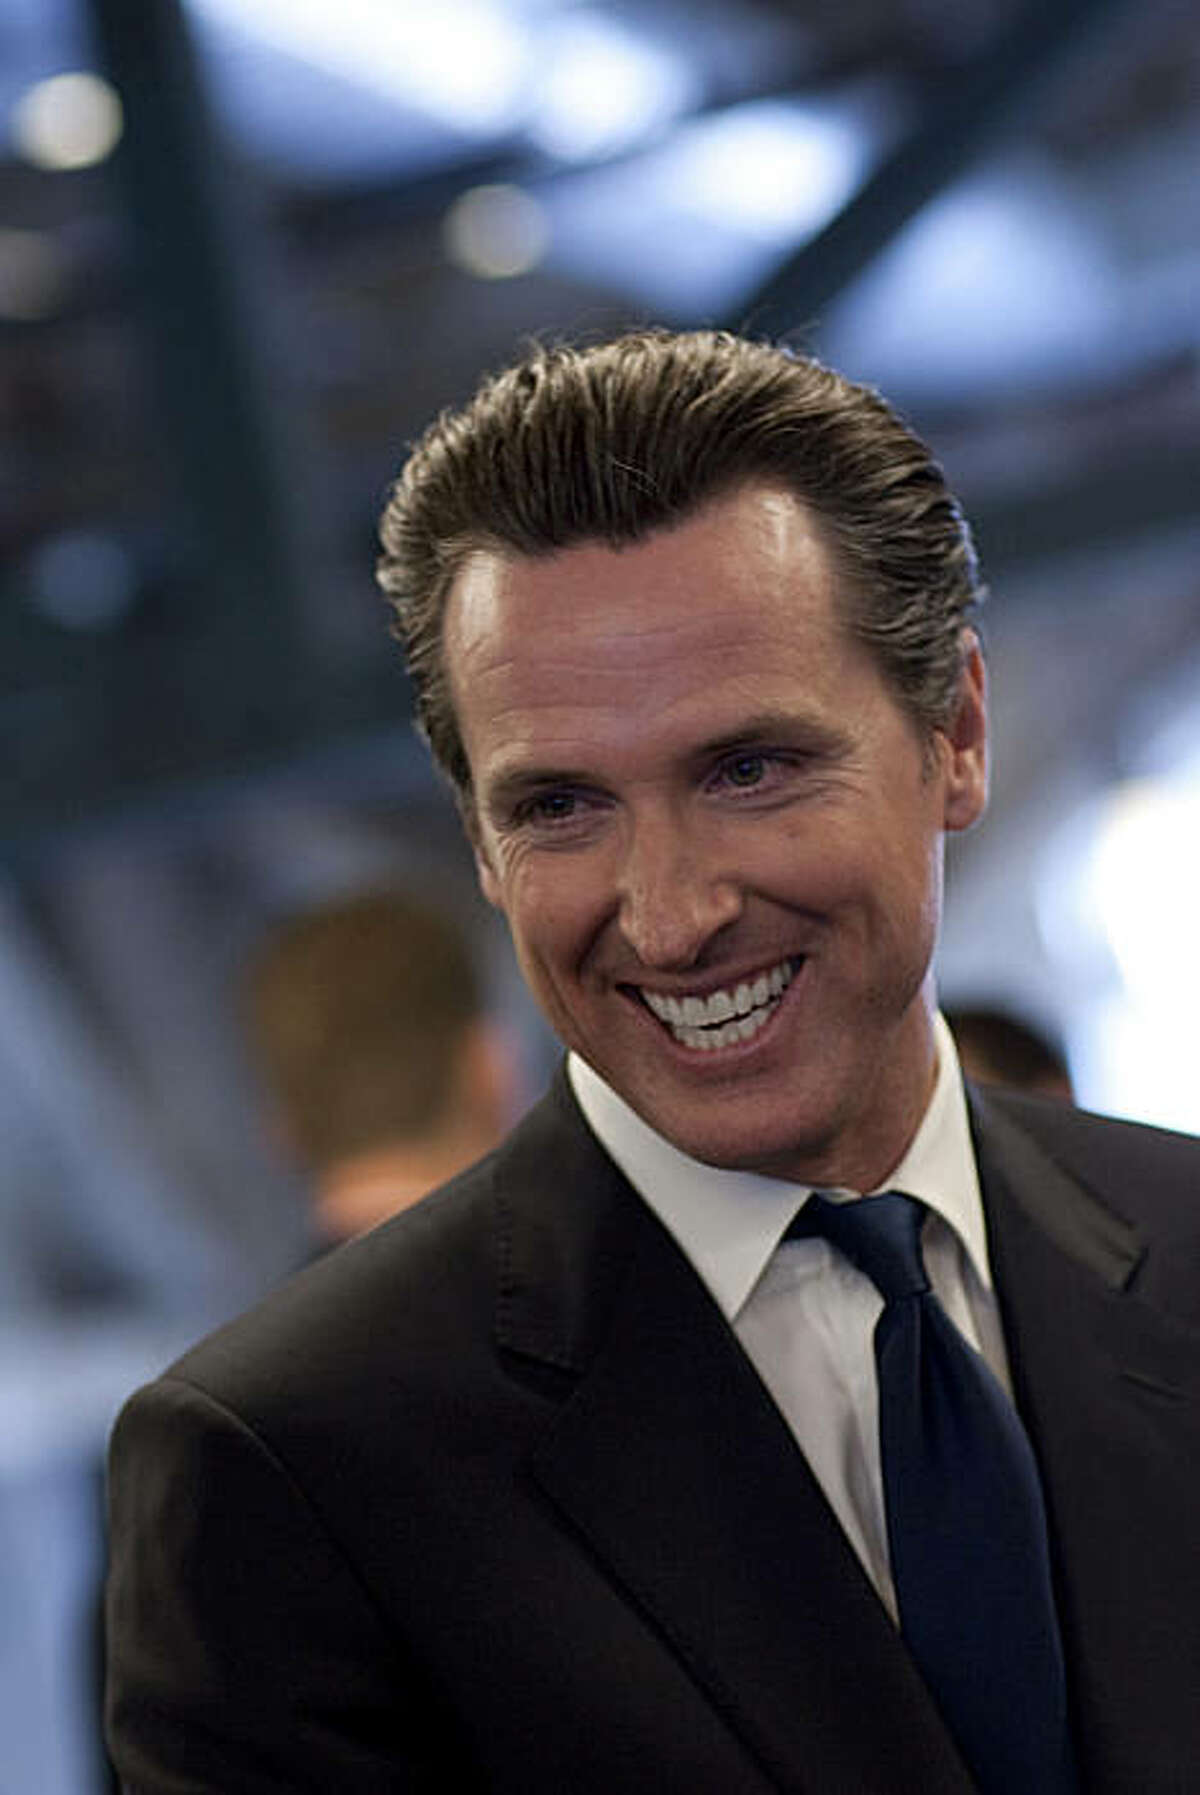 San Francisco Mayor Gavin Newsom laughs during the launch party celebrating the joining of Bloomberg News and the San Francisco Chronicle to produce a new daily business section in the Chronicle at Bloomberg's San Francisco bureau on June 22, 2010 in San Francisco, California. The collaboration, which will be named Business Report, The Chronicle with Bloomberg, will feature stories produced by both the Chronicle staff and Bloomberg News and is the first of it's kind in the United States. Photograph by David Paul Morris/Special to the Chronicle